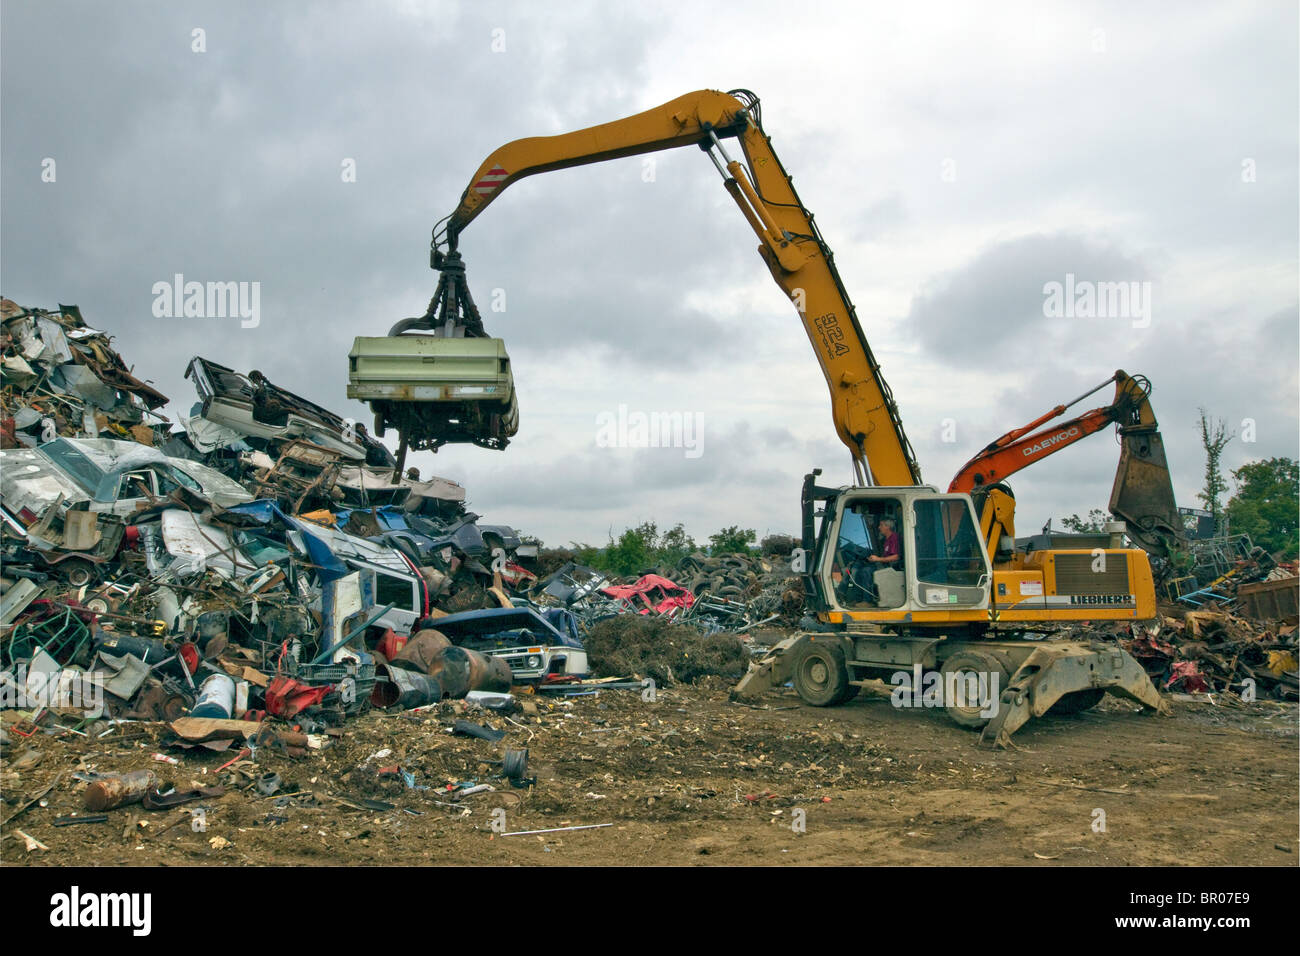 Car being unloaded on a pile in a metal scrap yard. - Stock Image